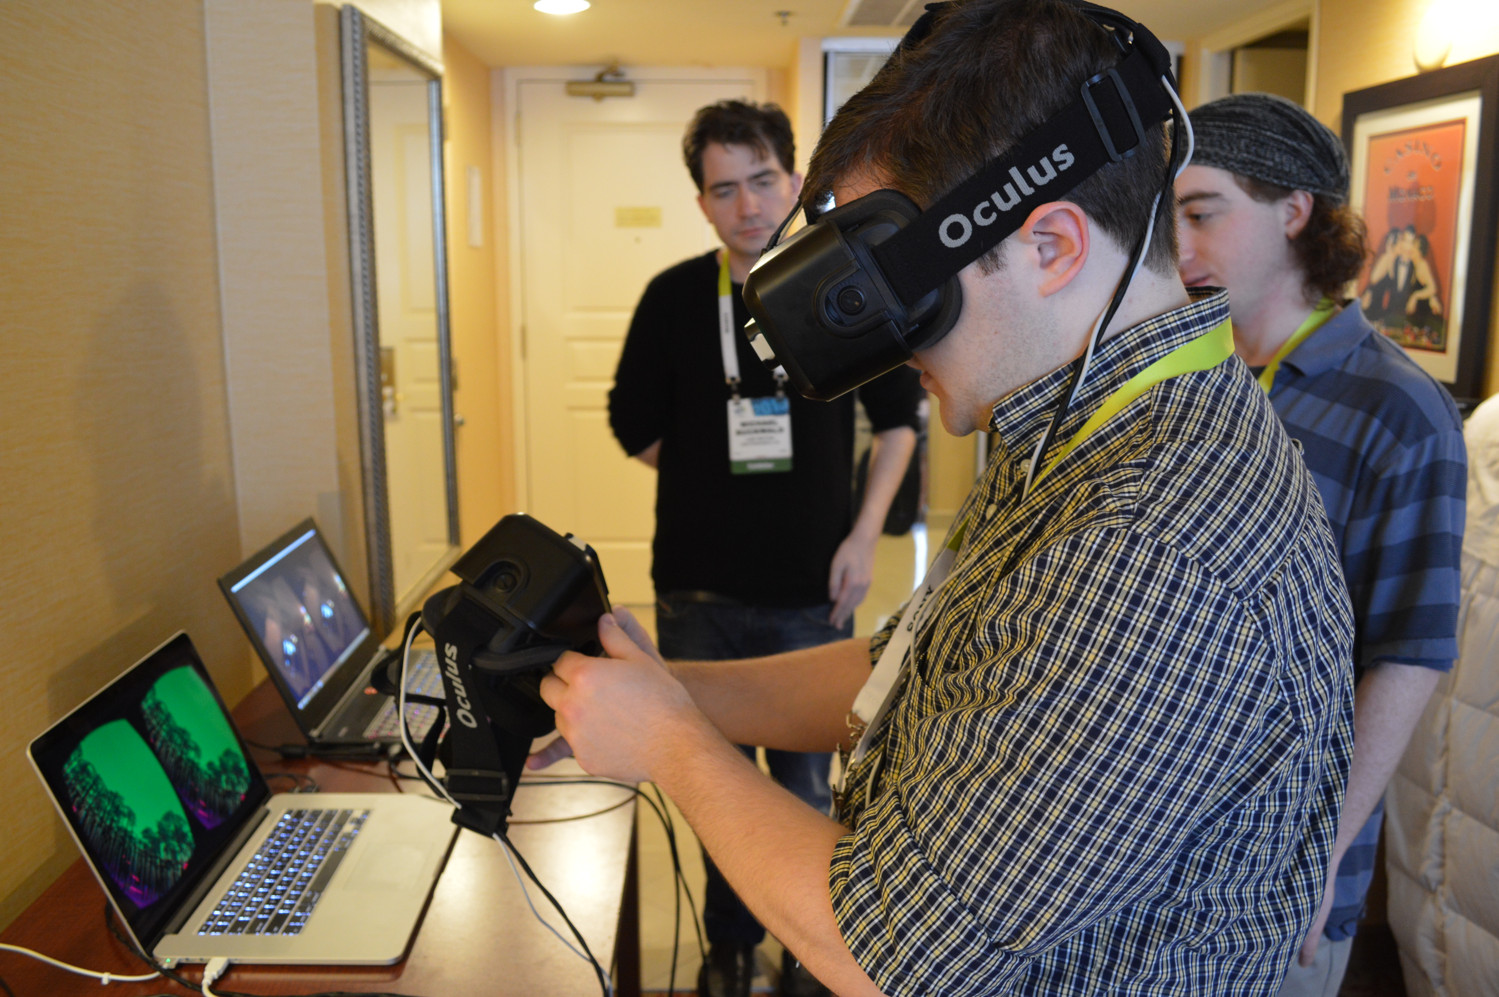 leap motion dragonfly ces 2015 interview (1)Leap Motion VR Developer Mount on HMDleap motion dragonfly ces 2015 interview (2)